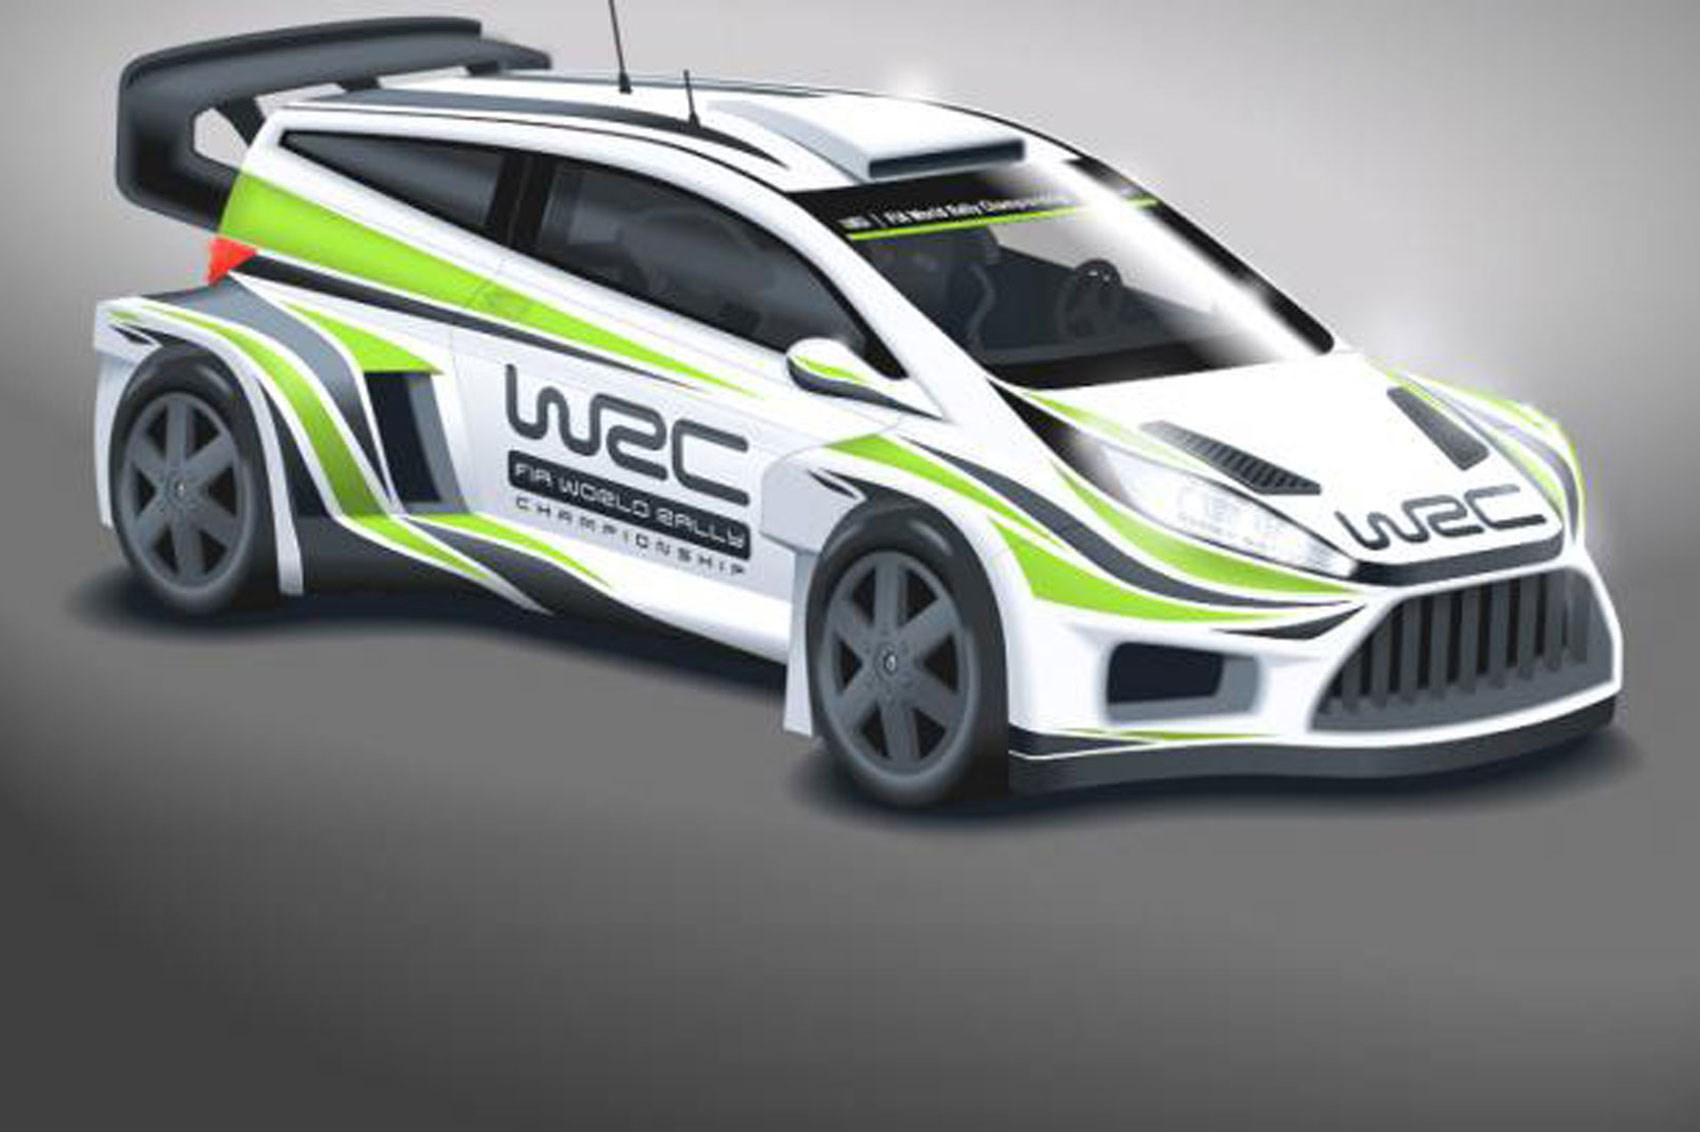 Ultrablogus  Terrific Wild New Look For Wrc Cars In  By Car Magazine With Goodlooking Wrc Cars Will Get Wider Bodies Bigger Wings And More Power For  With Comely Flex Interior Also Jaguar Mk Interior In Addition Car Interior Kit And Subaru Tribeca Interior As Well As Gmc Sierra  Interior Additionally Interior Door Handle From Carmagazinecouk With Ultrablogus  Goodlooking Wild New Look For Wrc Cars In  By Car Magazine With Comely Wrc Cars Will Get Wider Bodies Bigger Wings And More Power For  And Terrific Flex Interior Also Jaguar Mk Interior In Addition Car Interior Kit From Carmagazinecouk